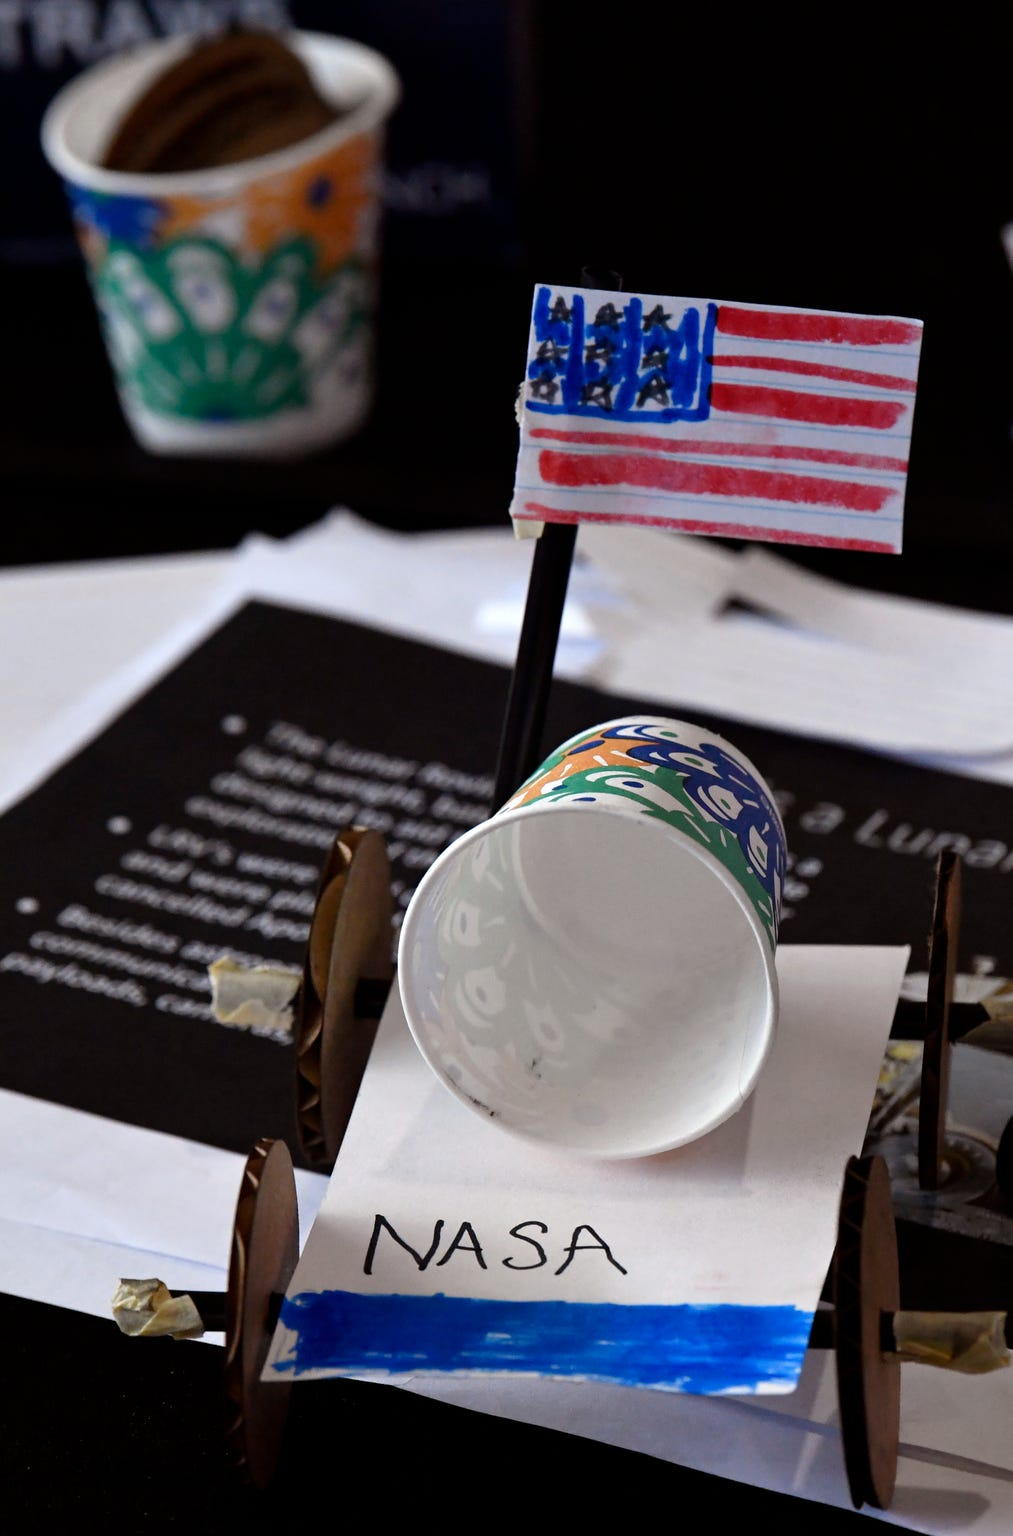 A finished child's craft project depicting a rover sits on a table near the Saturn V rocket at the Johnson Space Center. Space Center Houston runs trams to the park, as well as to other locations at JSC throughout the day